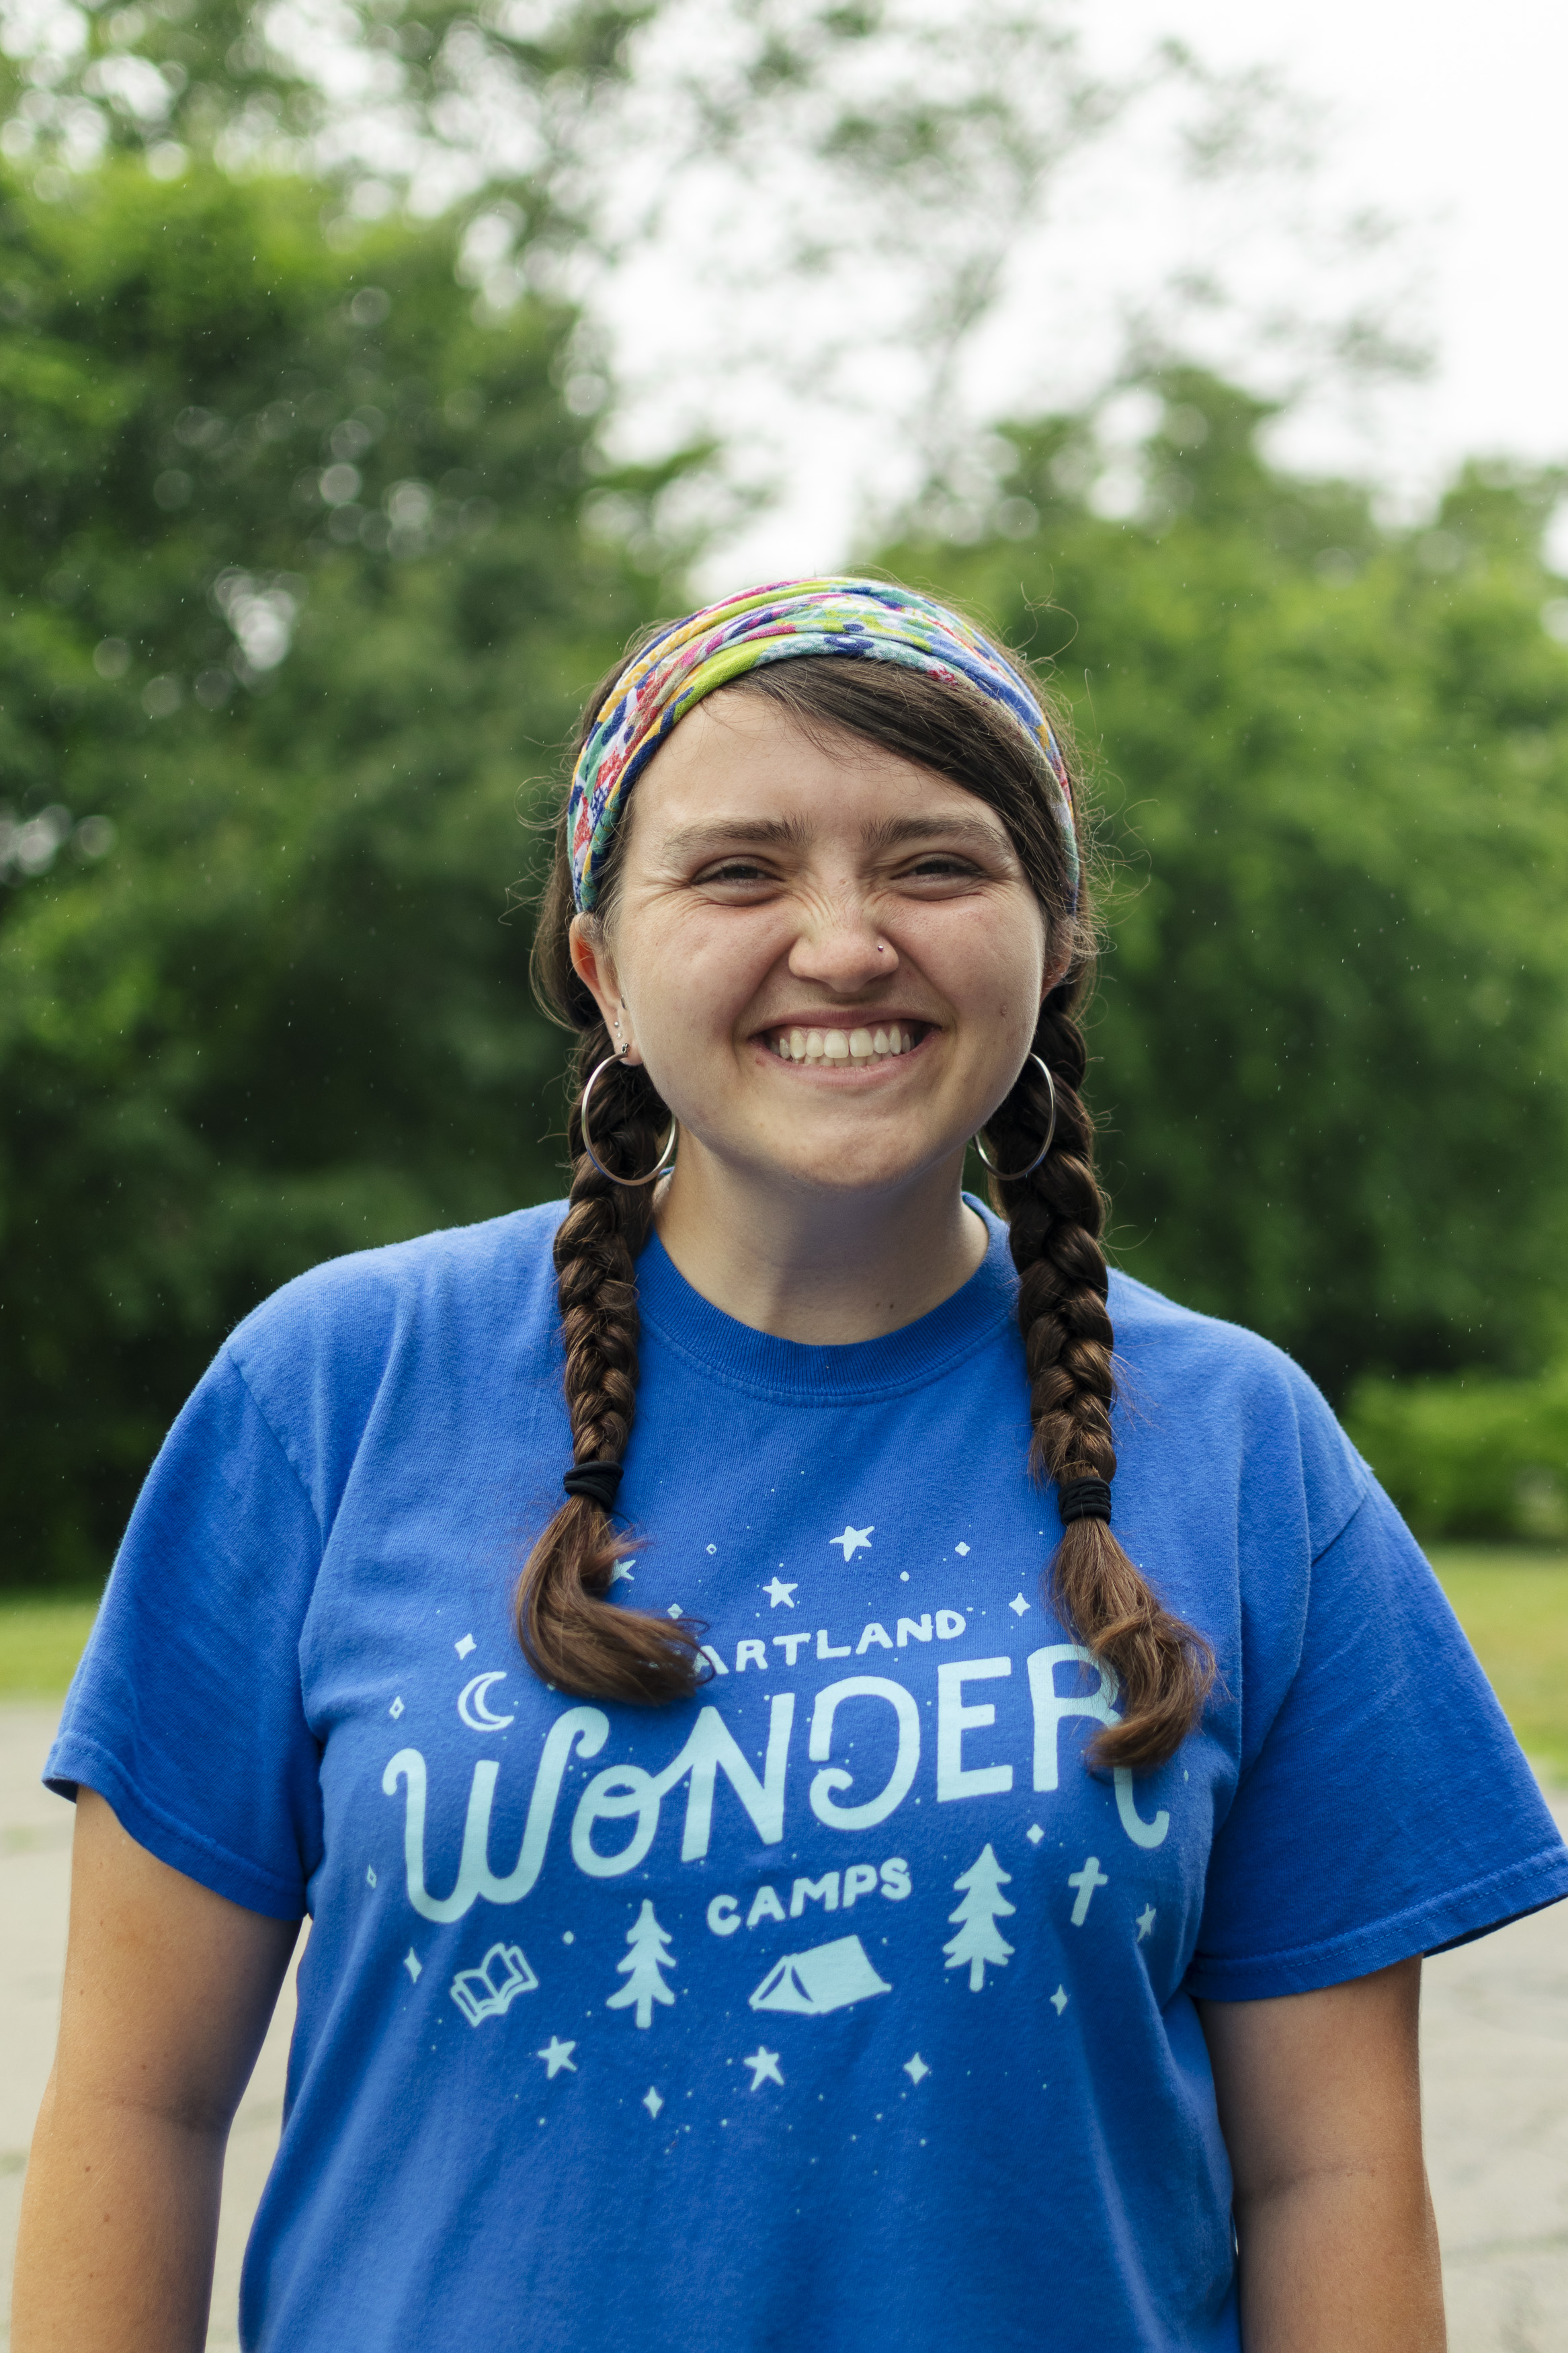 Kaleigh Steward is a student at Midwestern Seminary studying Counseling. Her favorite book of the Bible is Hosea because it shows God's faithfulness to His ever-wandering people. It's a reminder that God is always faithful, even when His people are not.